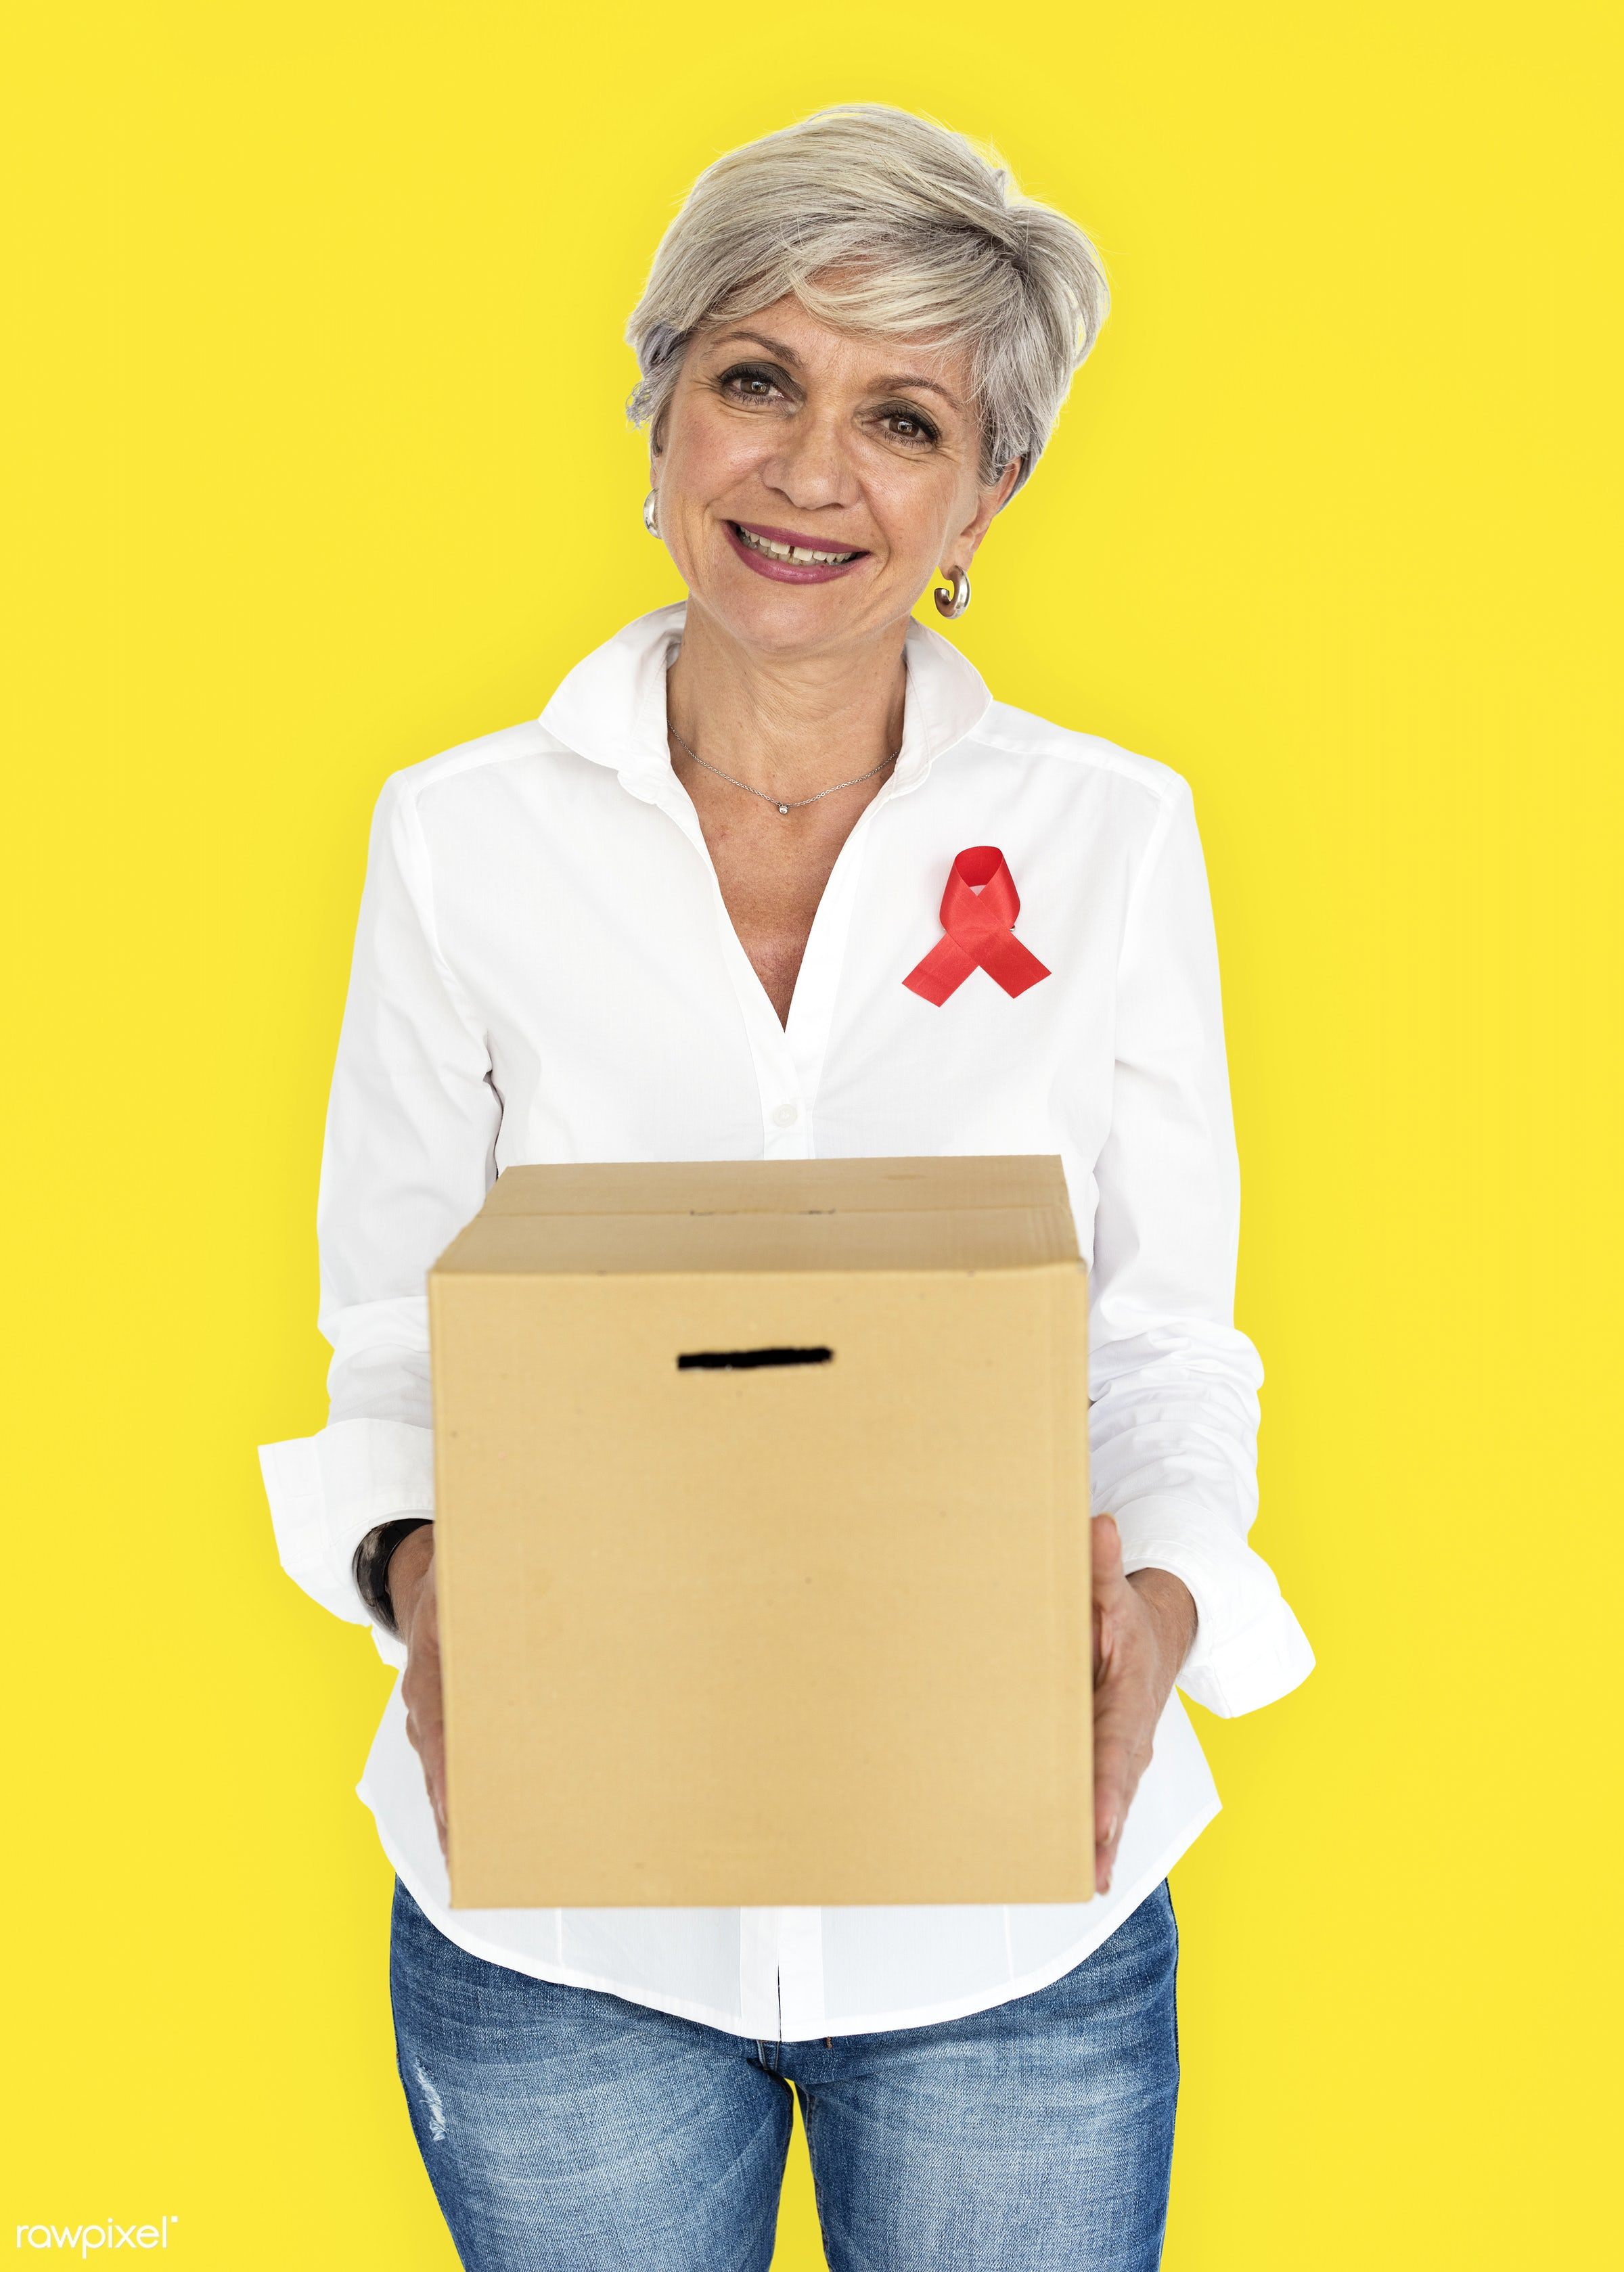 studio, expression, person, holding, red ribbon, yellow, charity, people, hiv, solo, woman, ribbon, cheerful, smiling,...